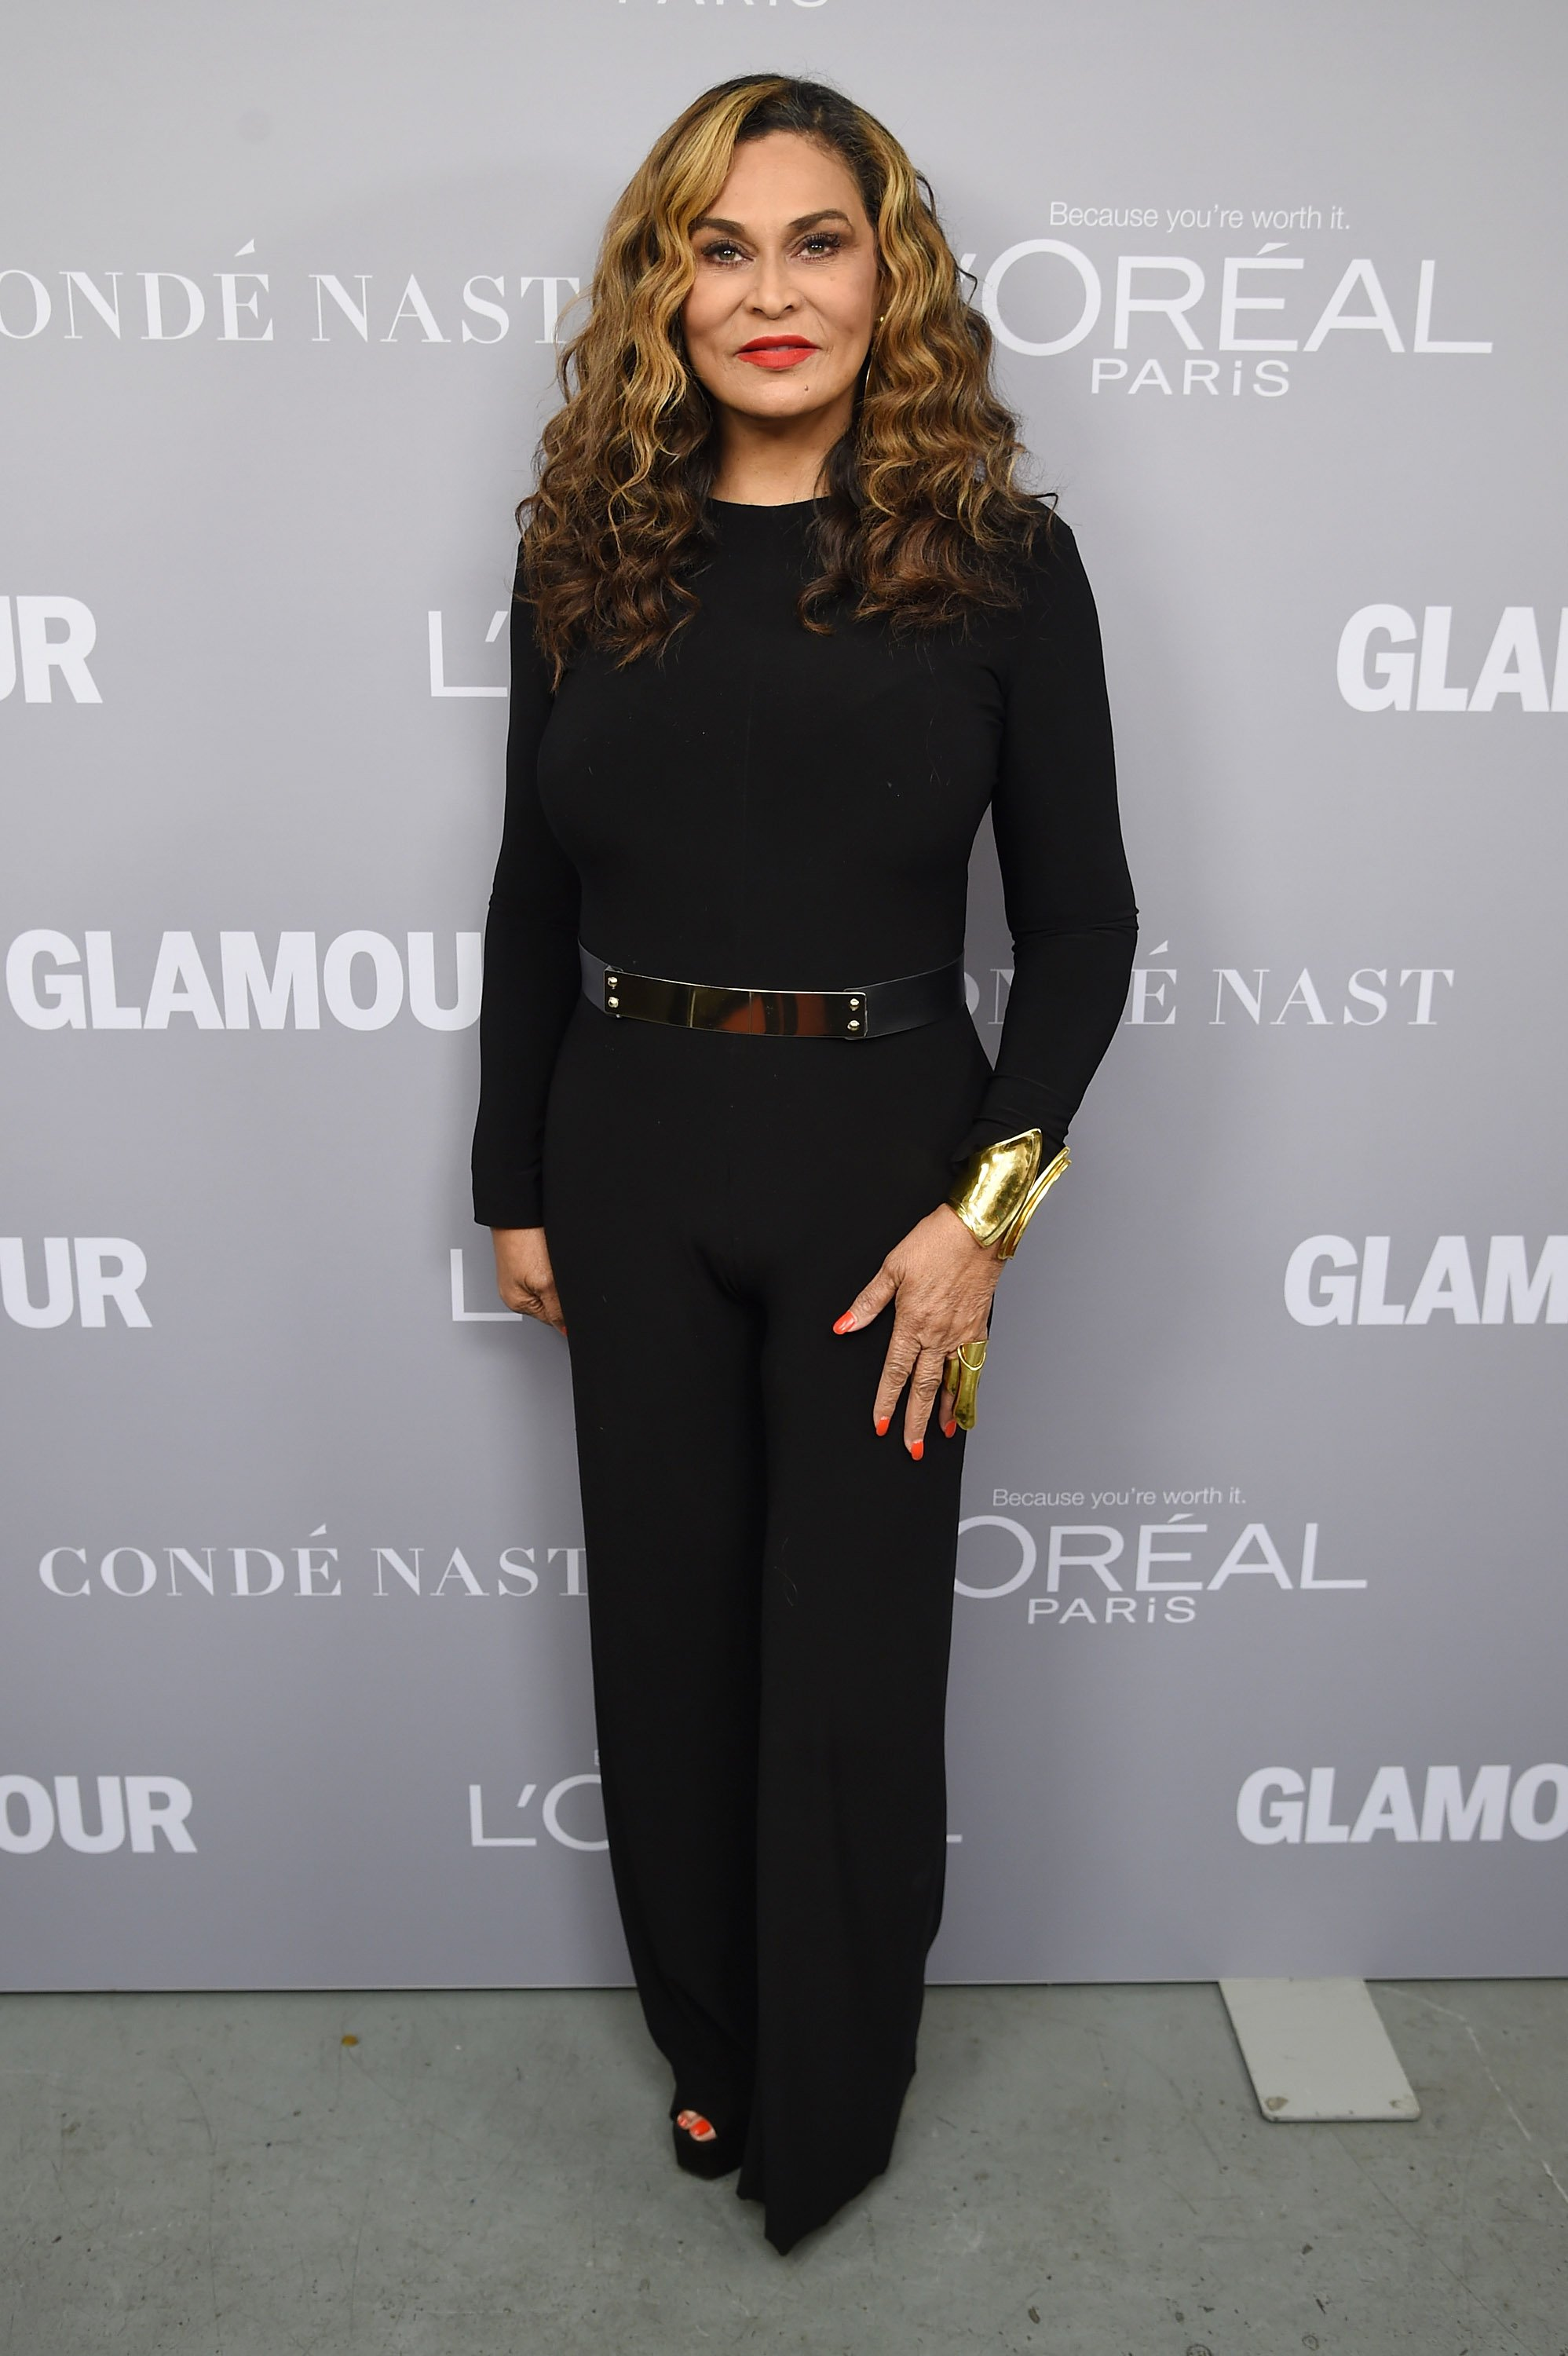 Tina Knowles attends Glamour's 2017 Women of The Year Awards show on November 13, 2017 in Brooklyn, New York | Photo: Getty Images